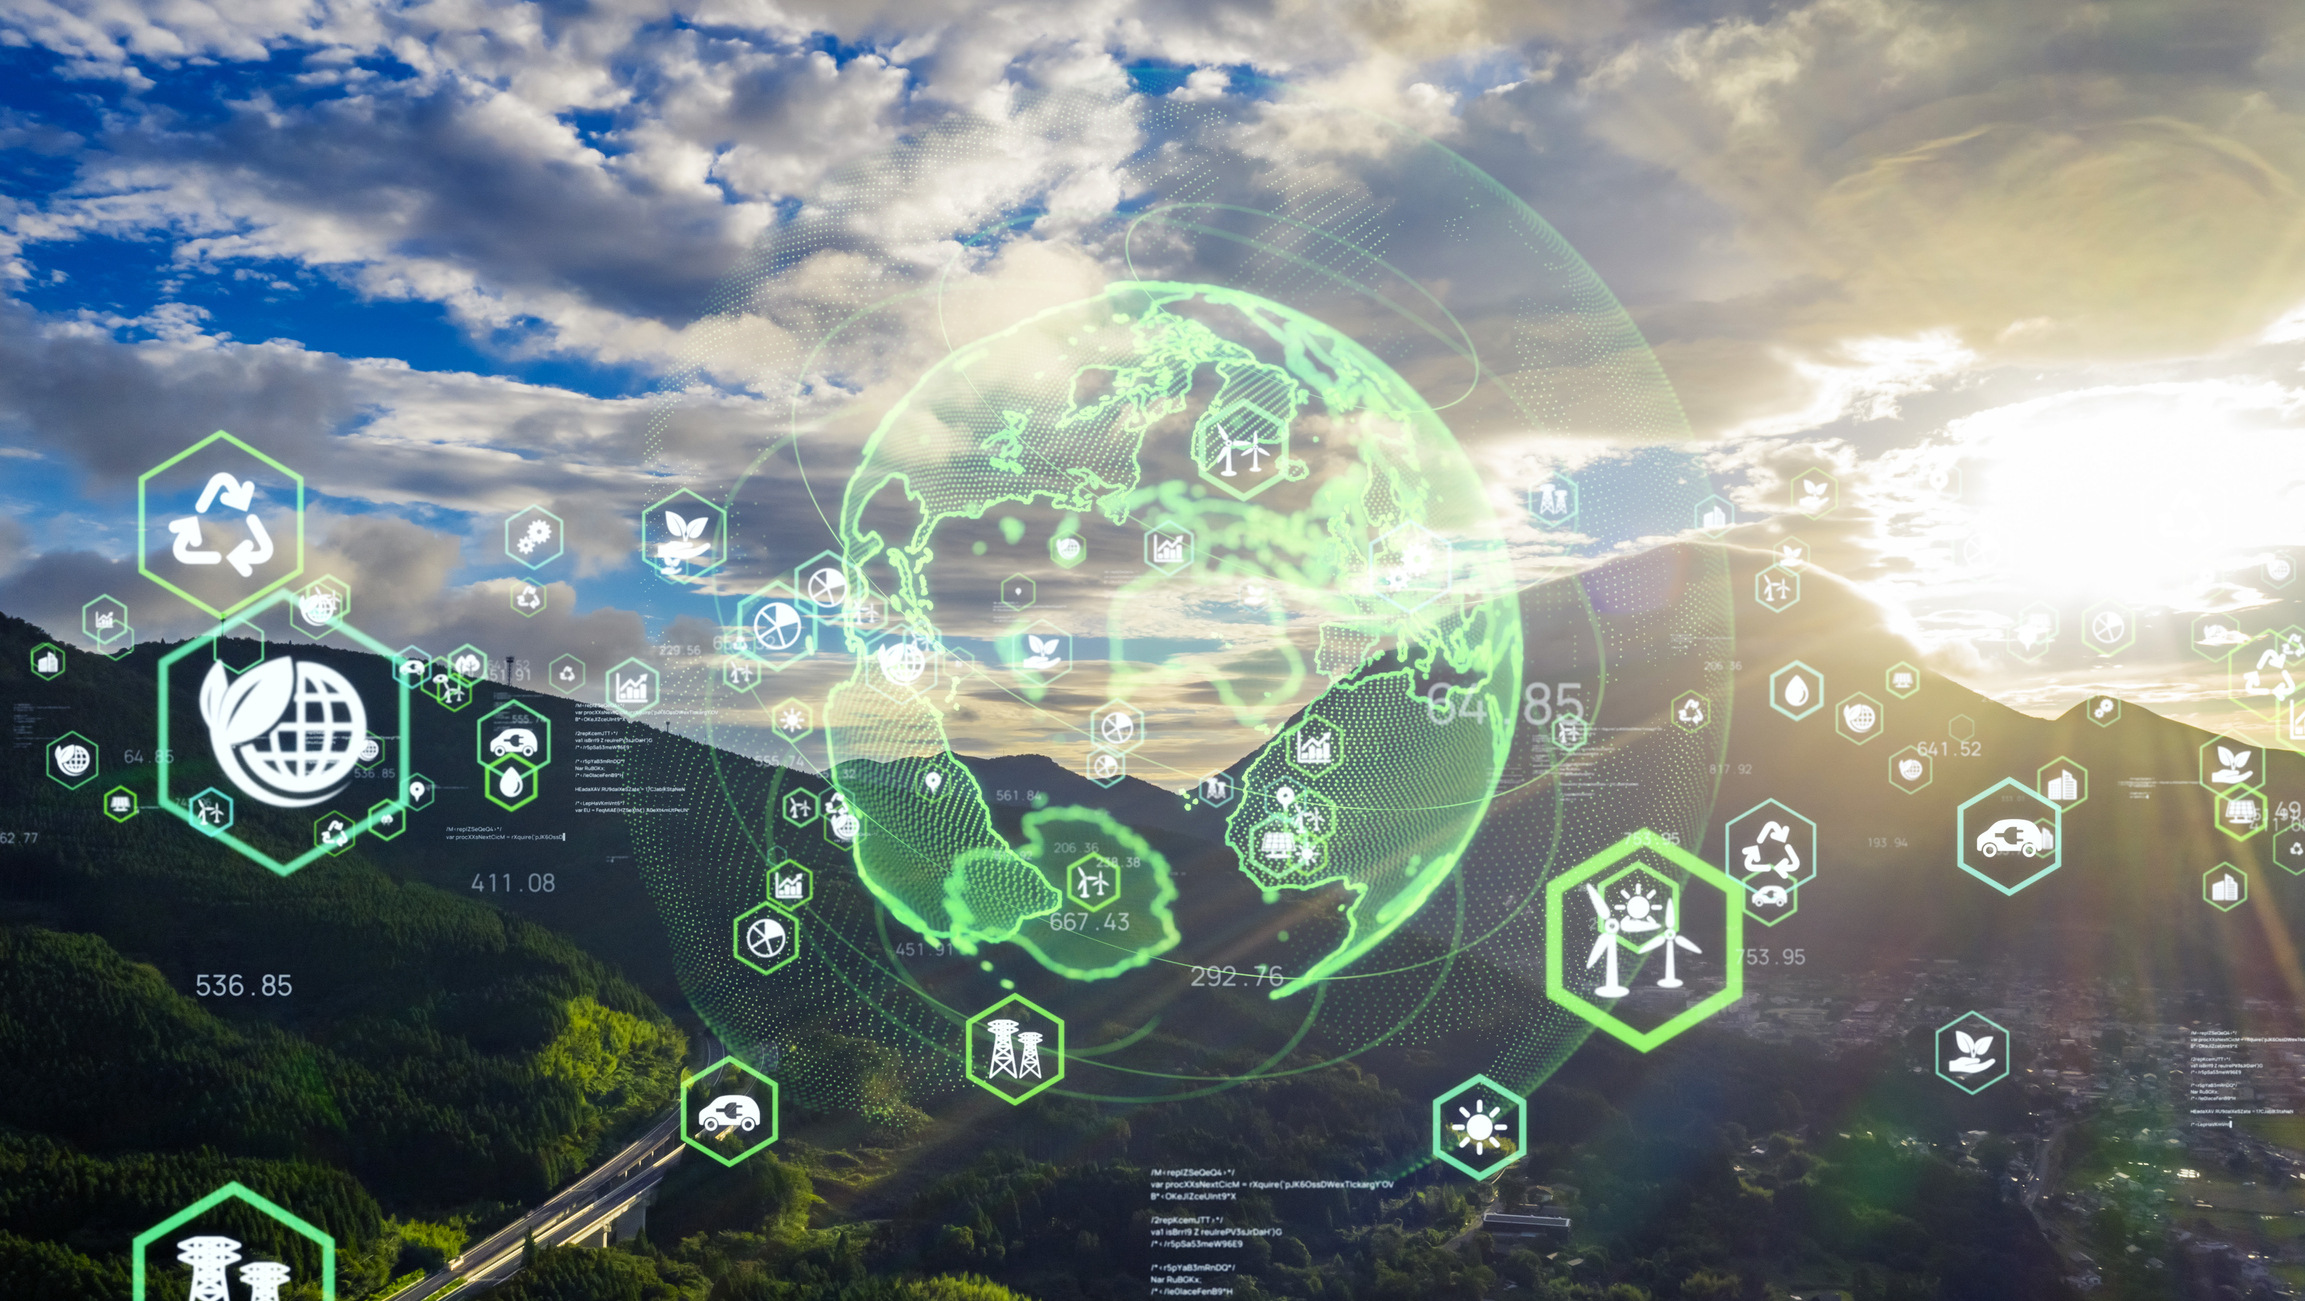 Taking charge of sustainability through the power of data